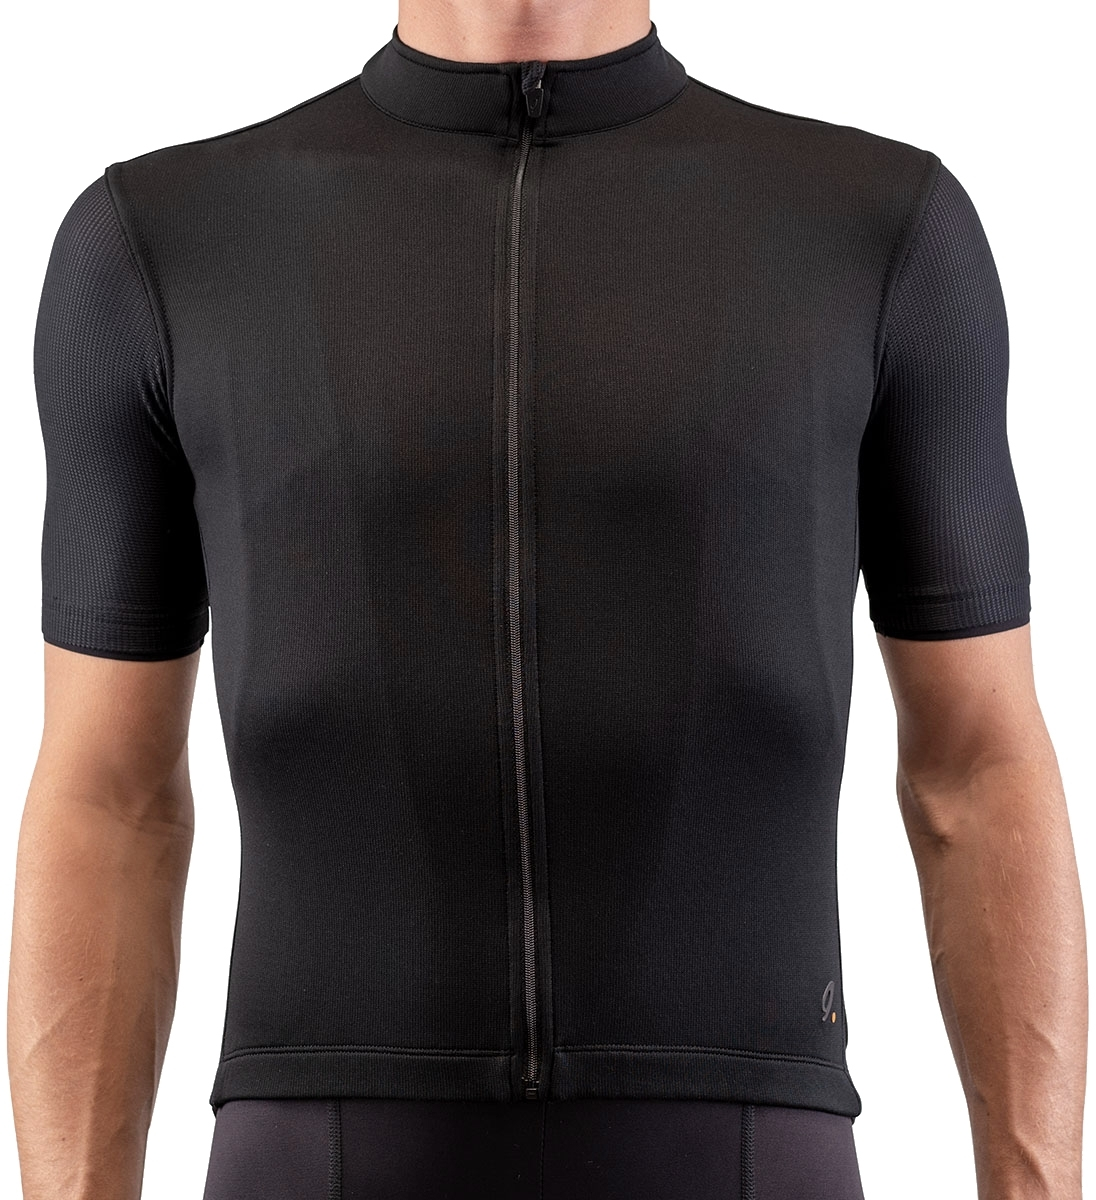 Isadore Signature Cycling Jersey - anthracite/anthracite L